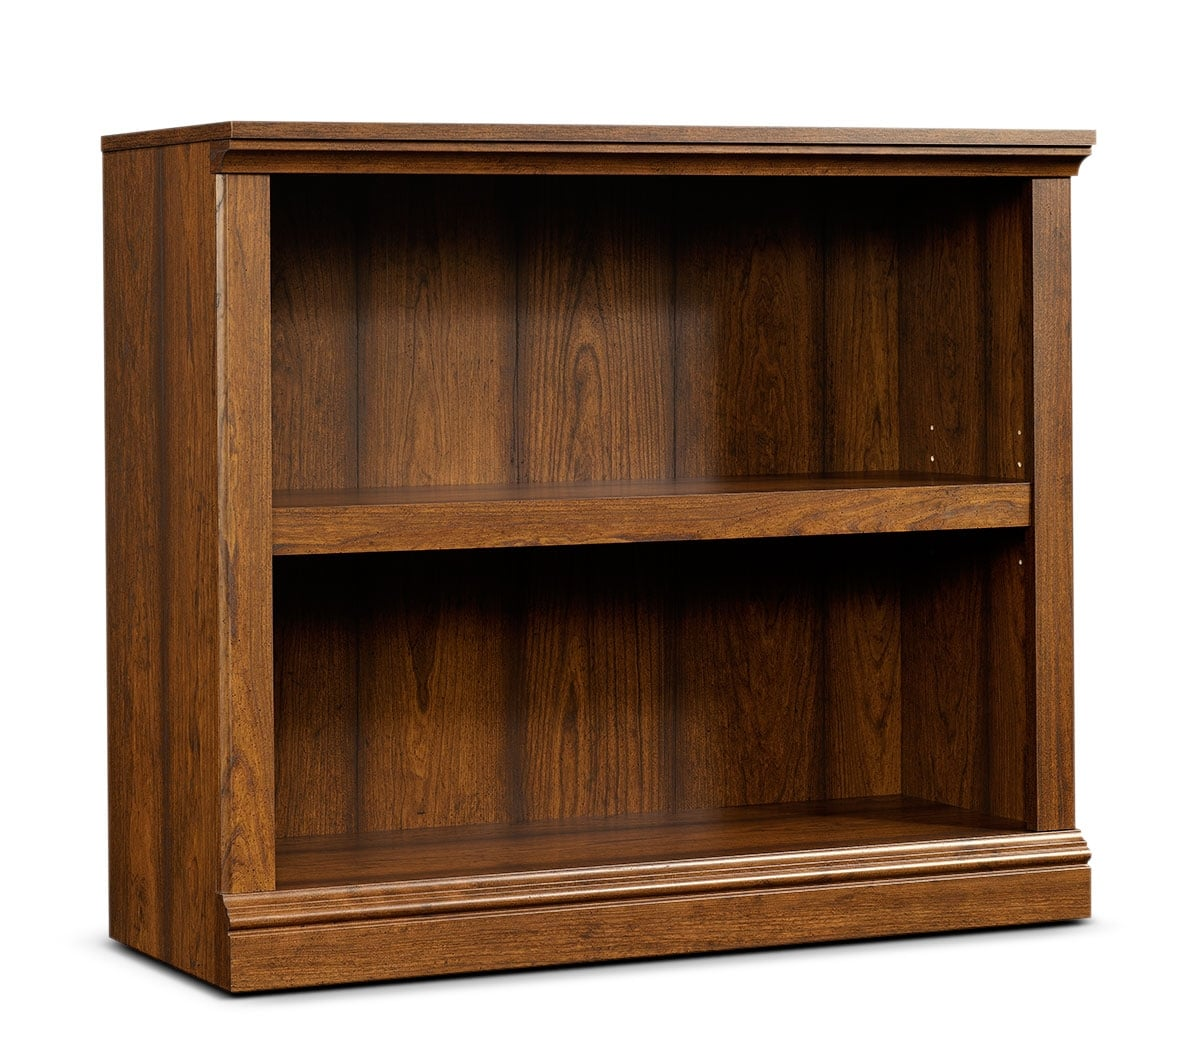 Florida Bookcase with Two Shelves – Washington Cherry